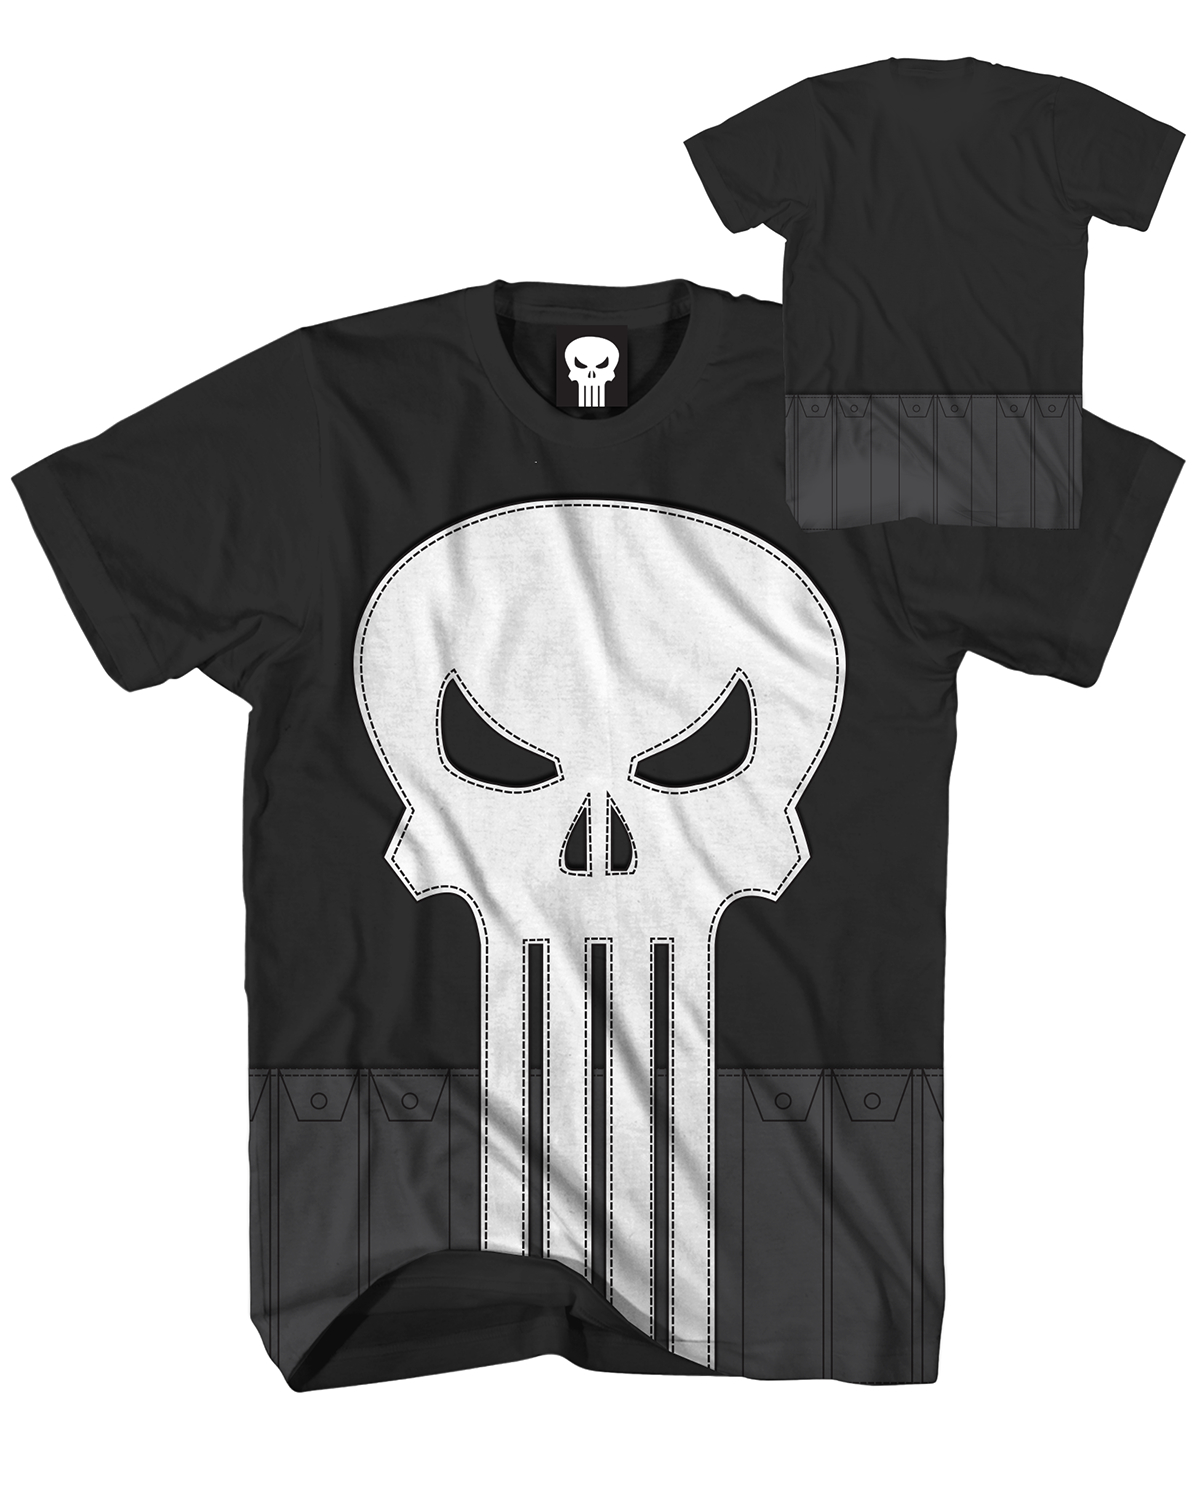 PUNISHER SEWN PUNISHER BLACK T/S SM